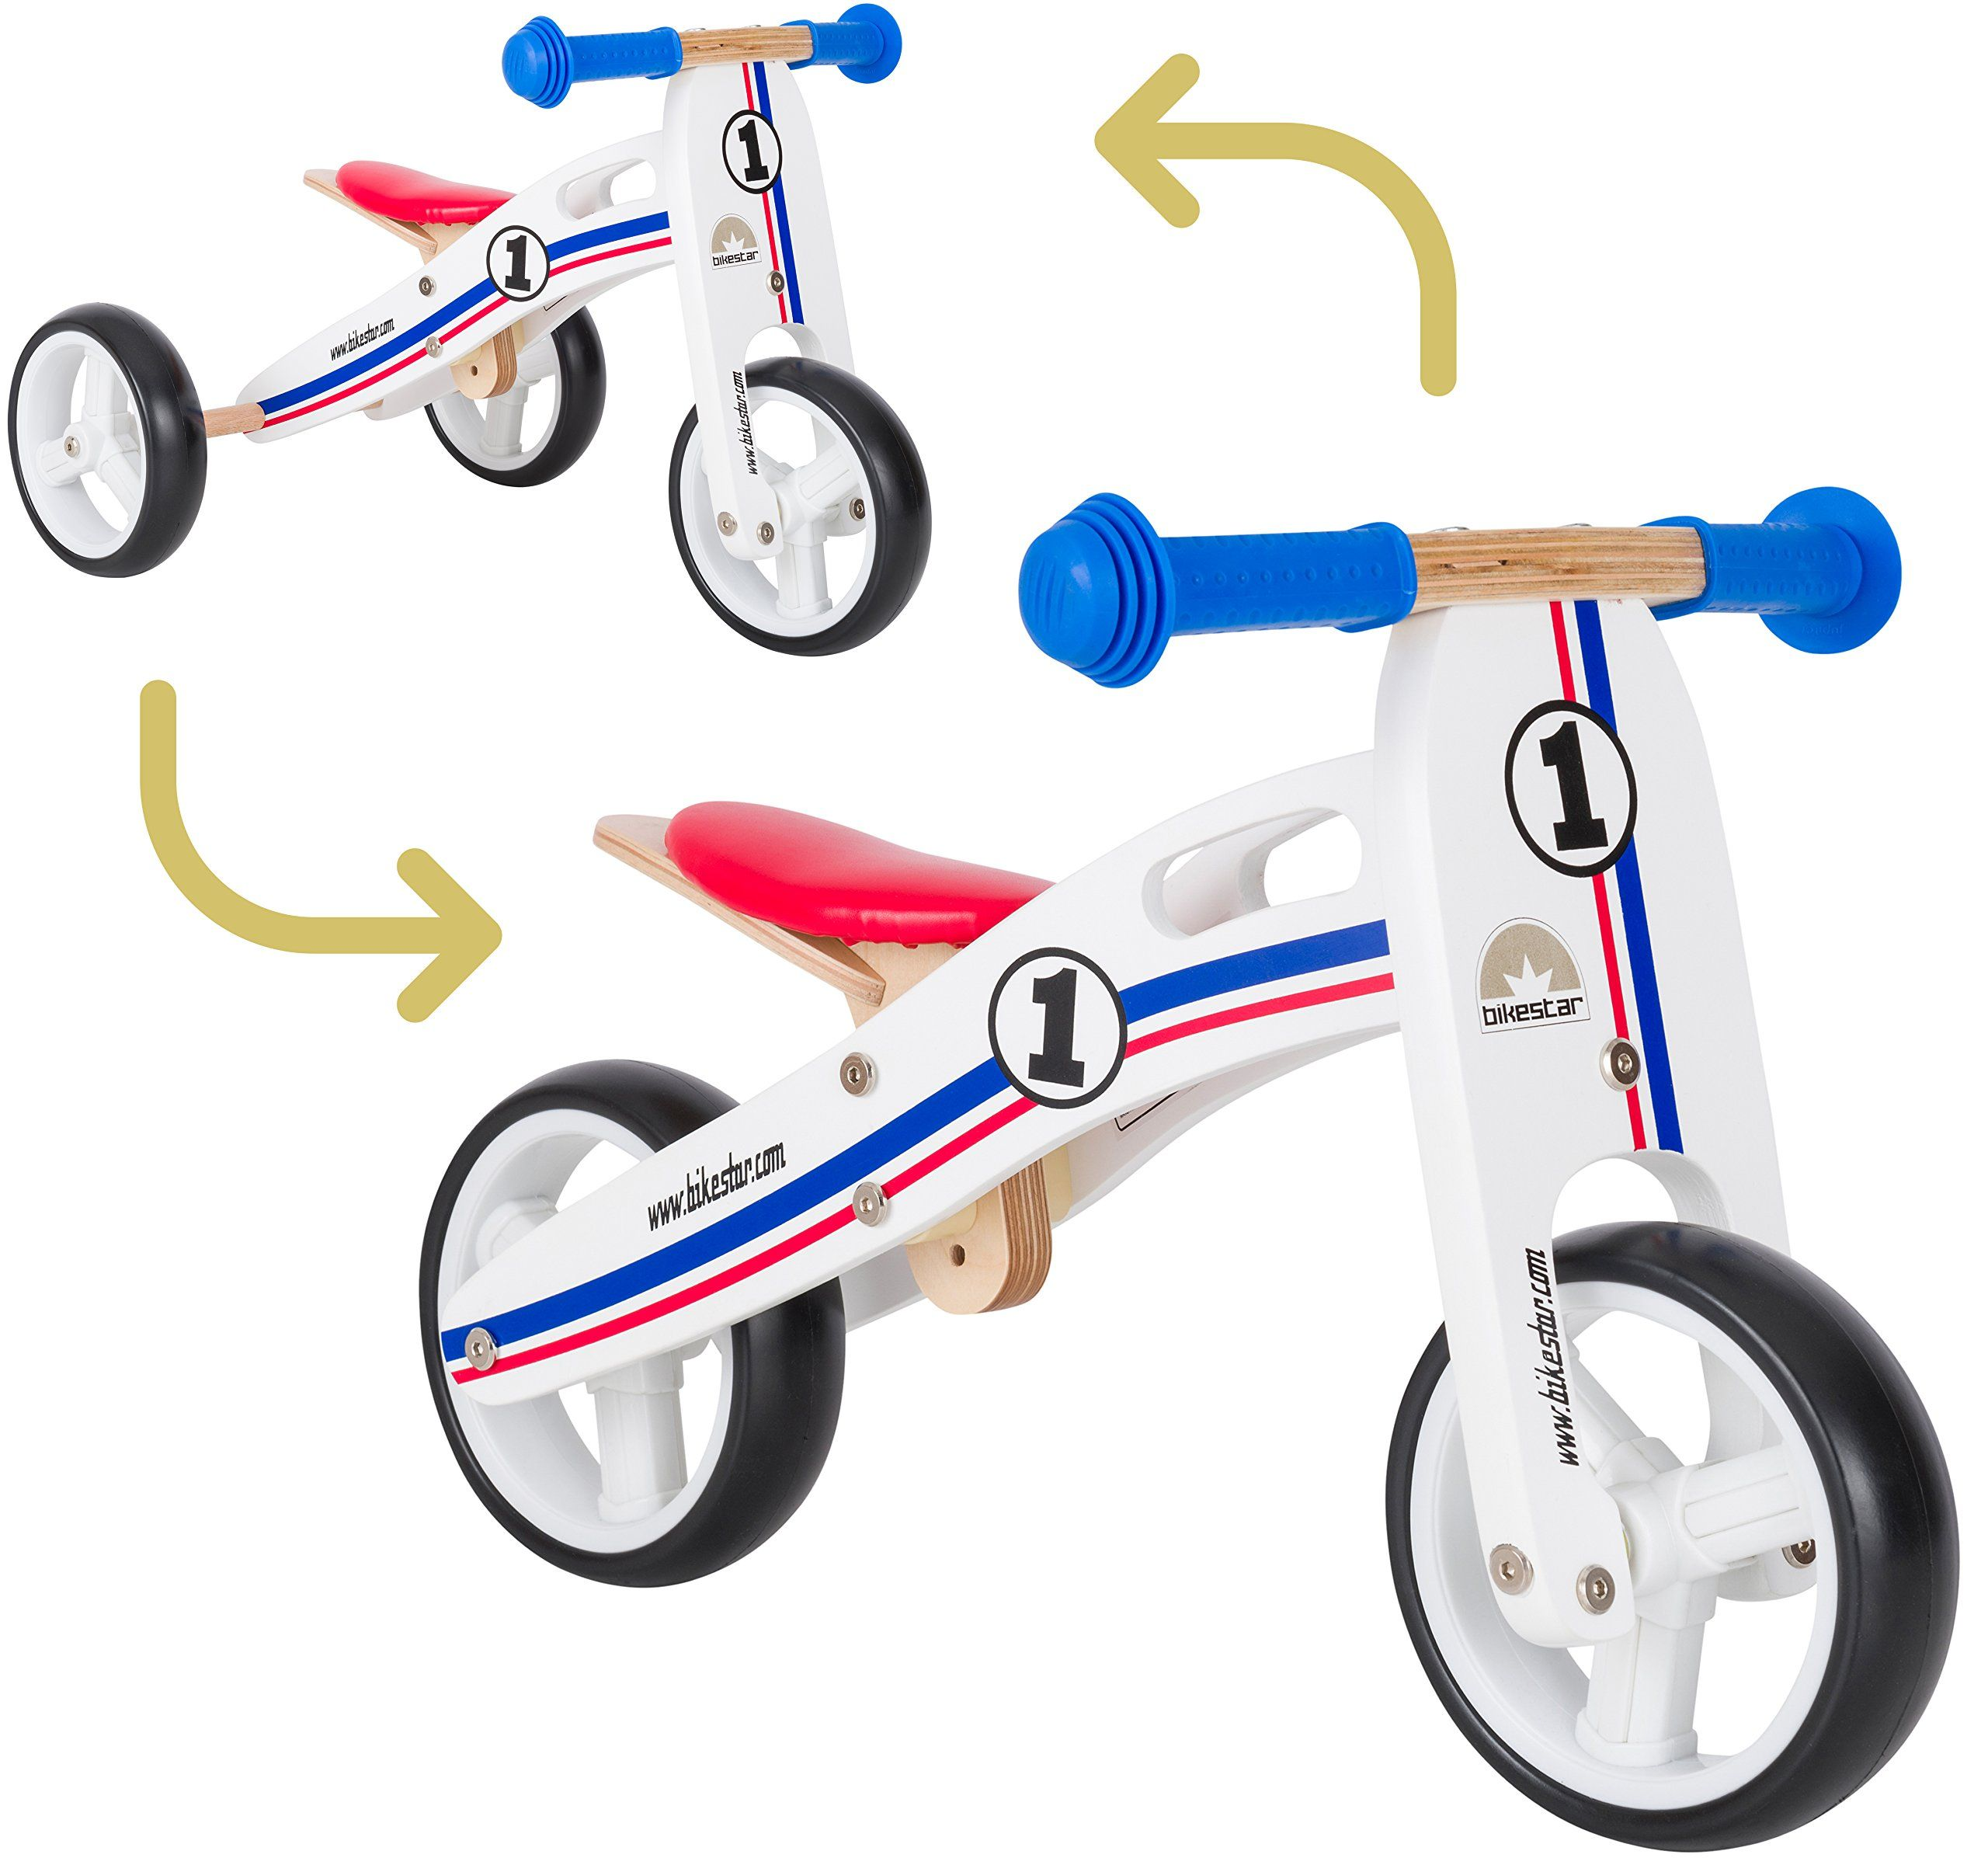 Bikestar Original Safety Wooden Lightweight Kids First Balance